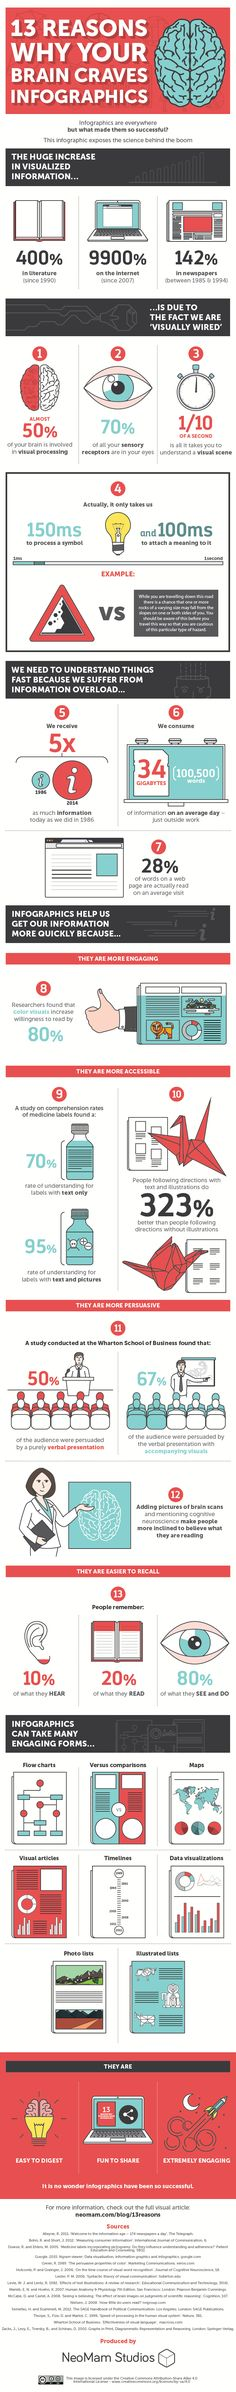 Good Reasons for Infographics